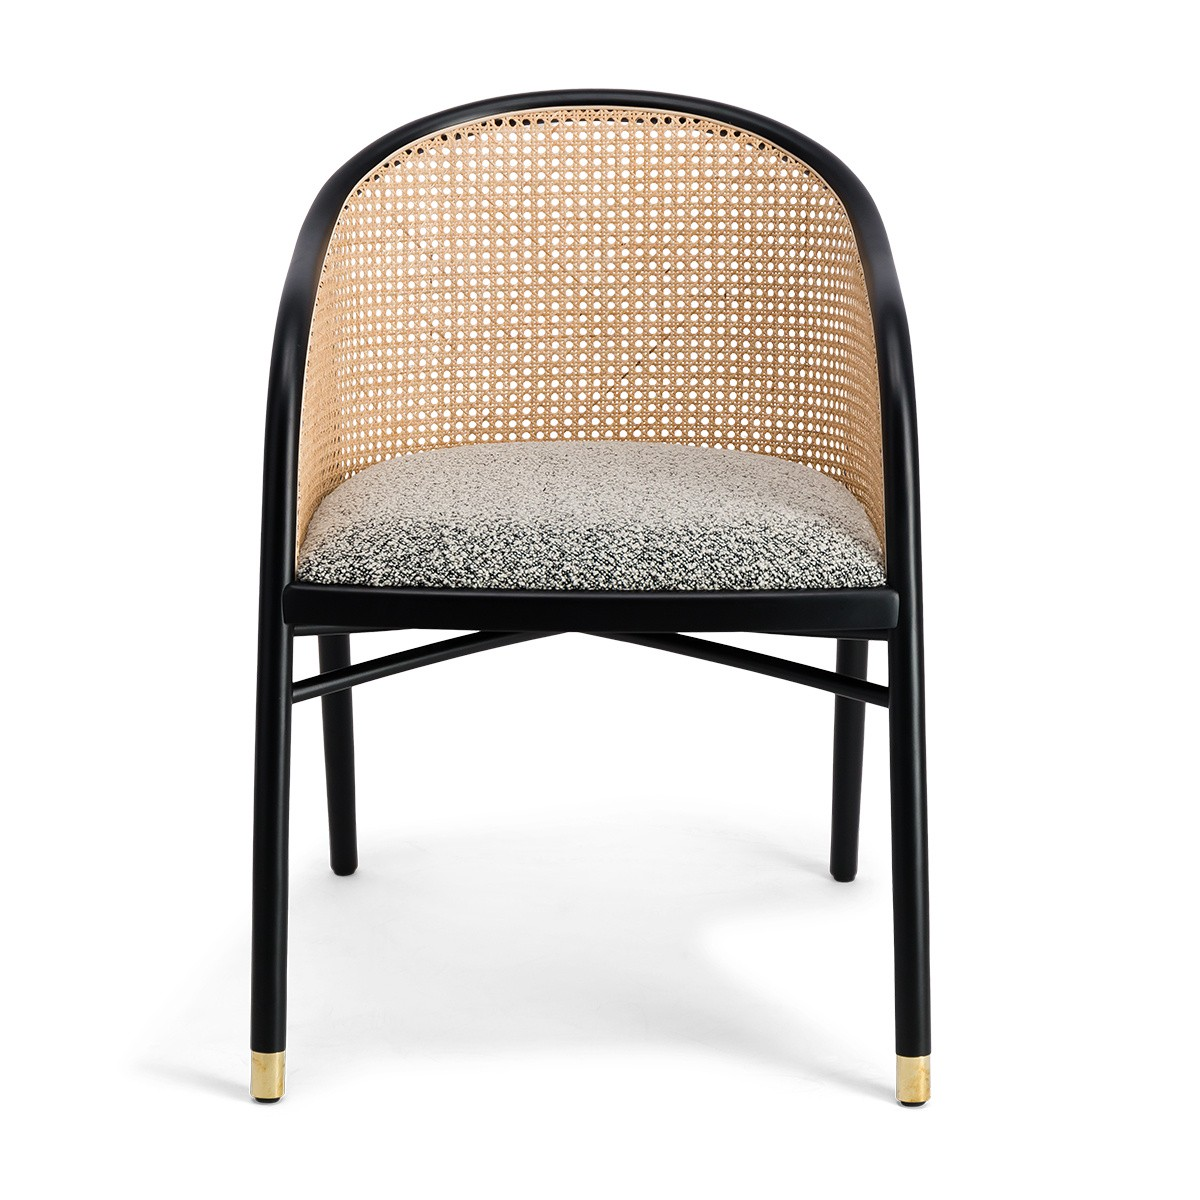 Cavallo Armchair, Black and White Curly Wool with Black Lacquered Frame